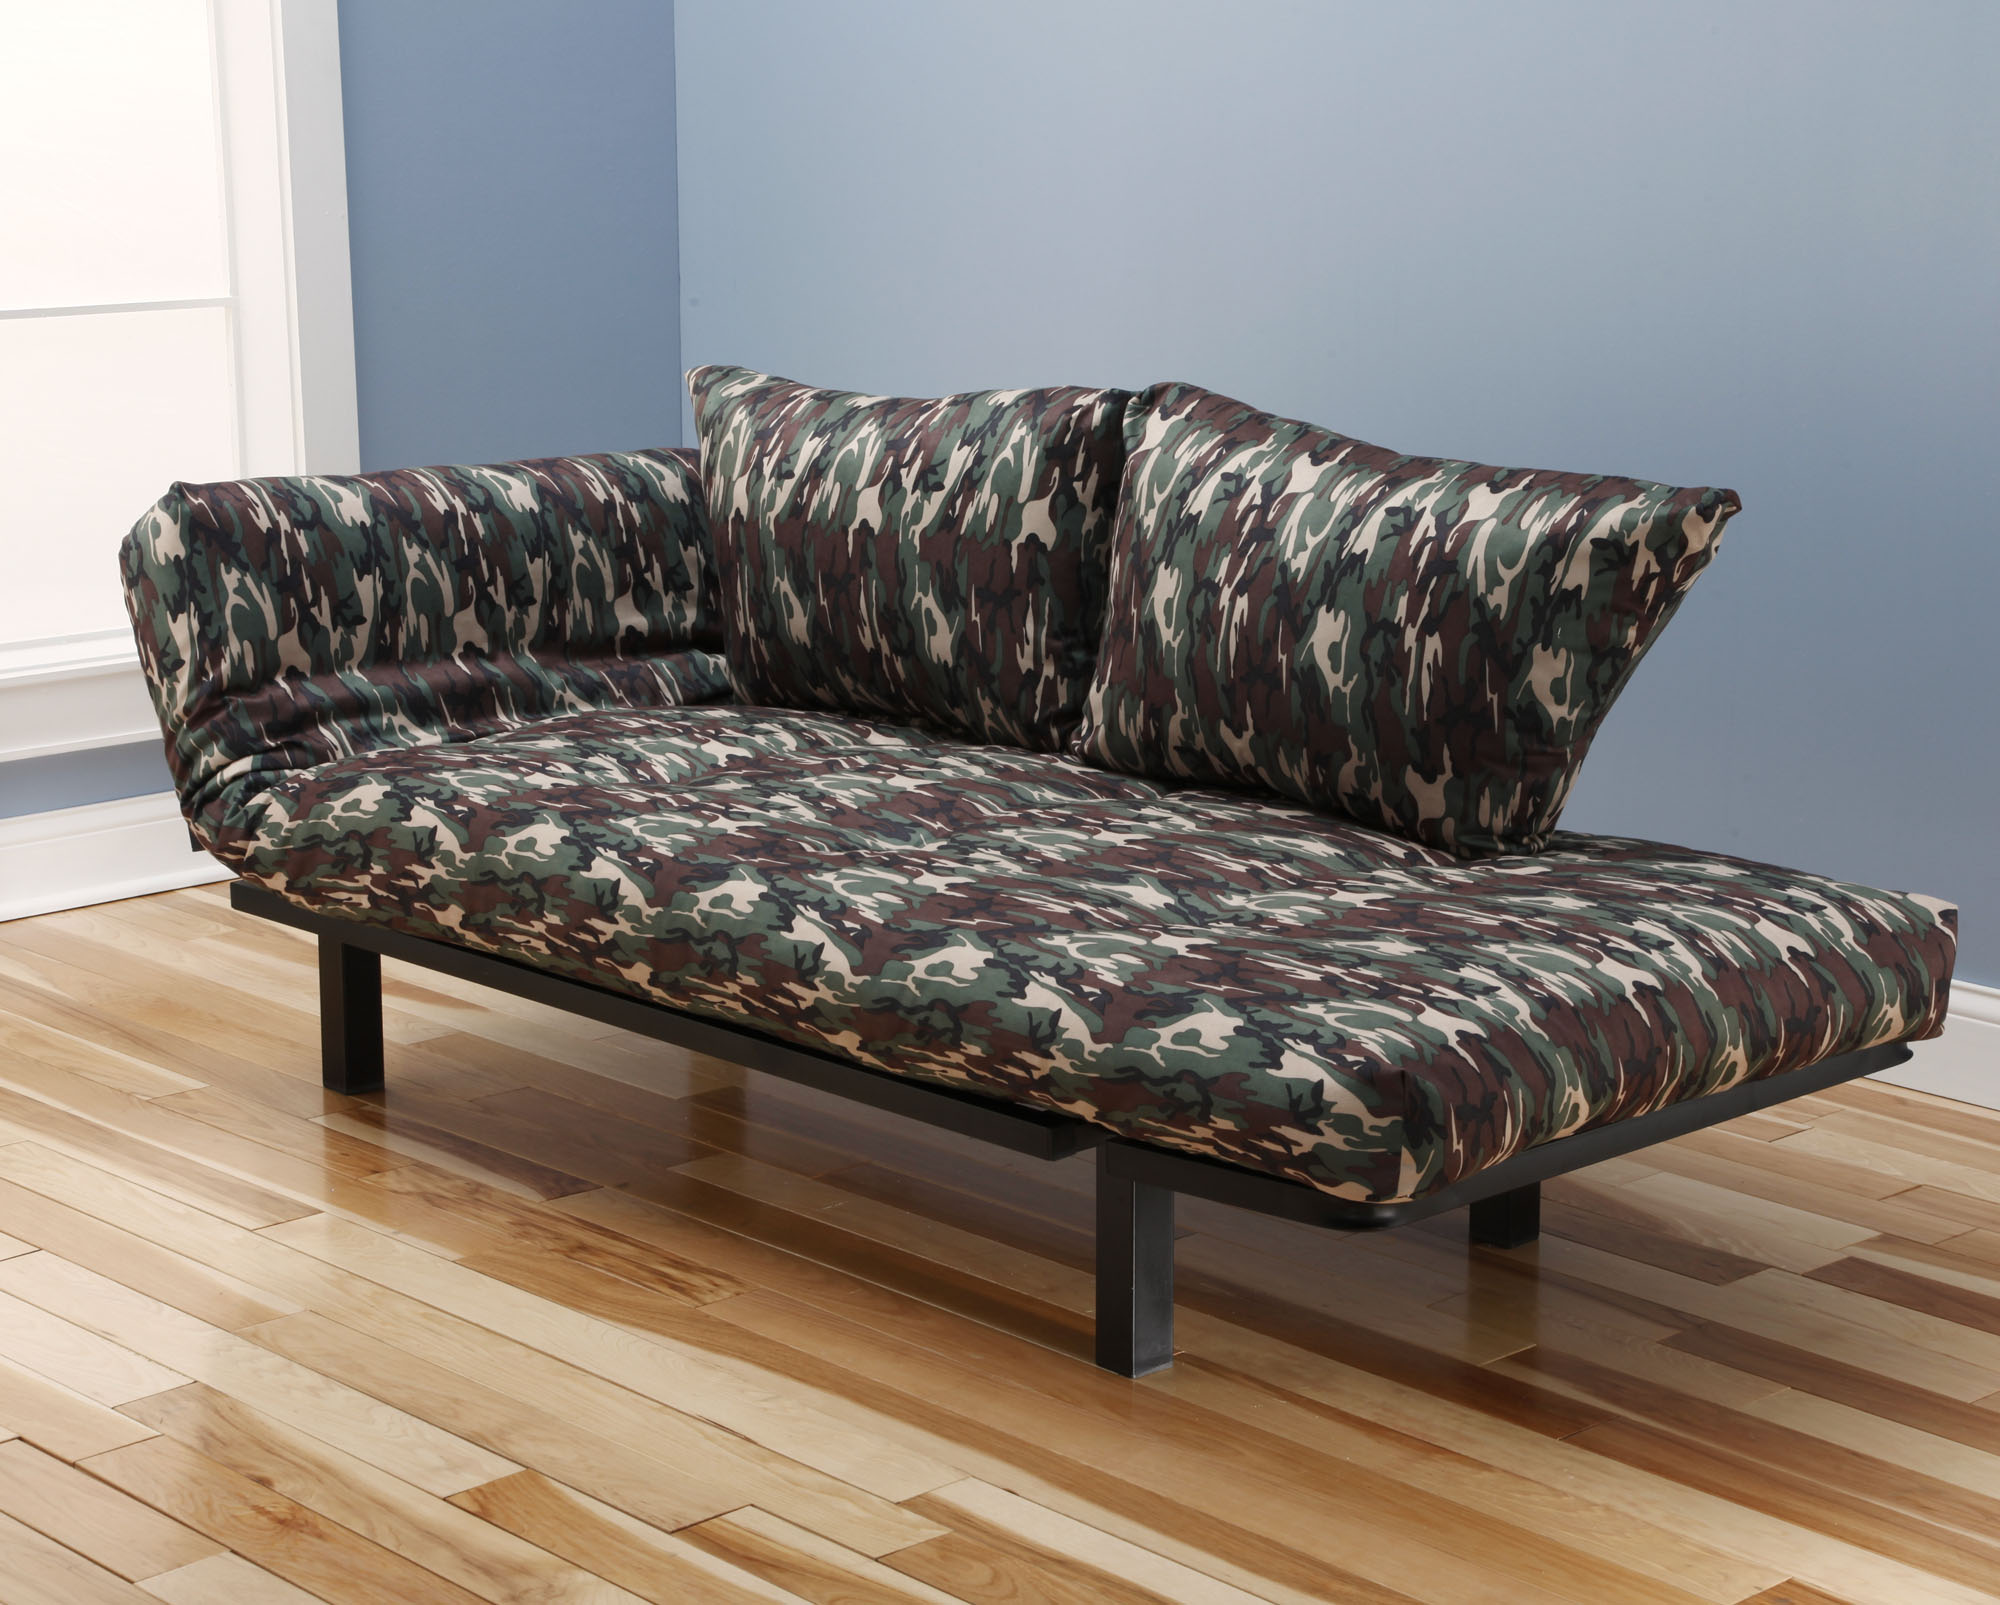 Ely Futon Daybed Lounger With Mattress Galaxy Camo By Kodiak